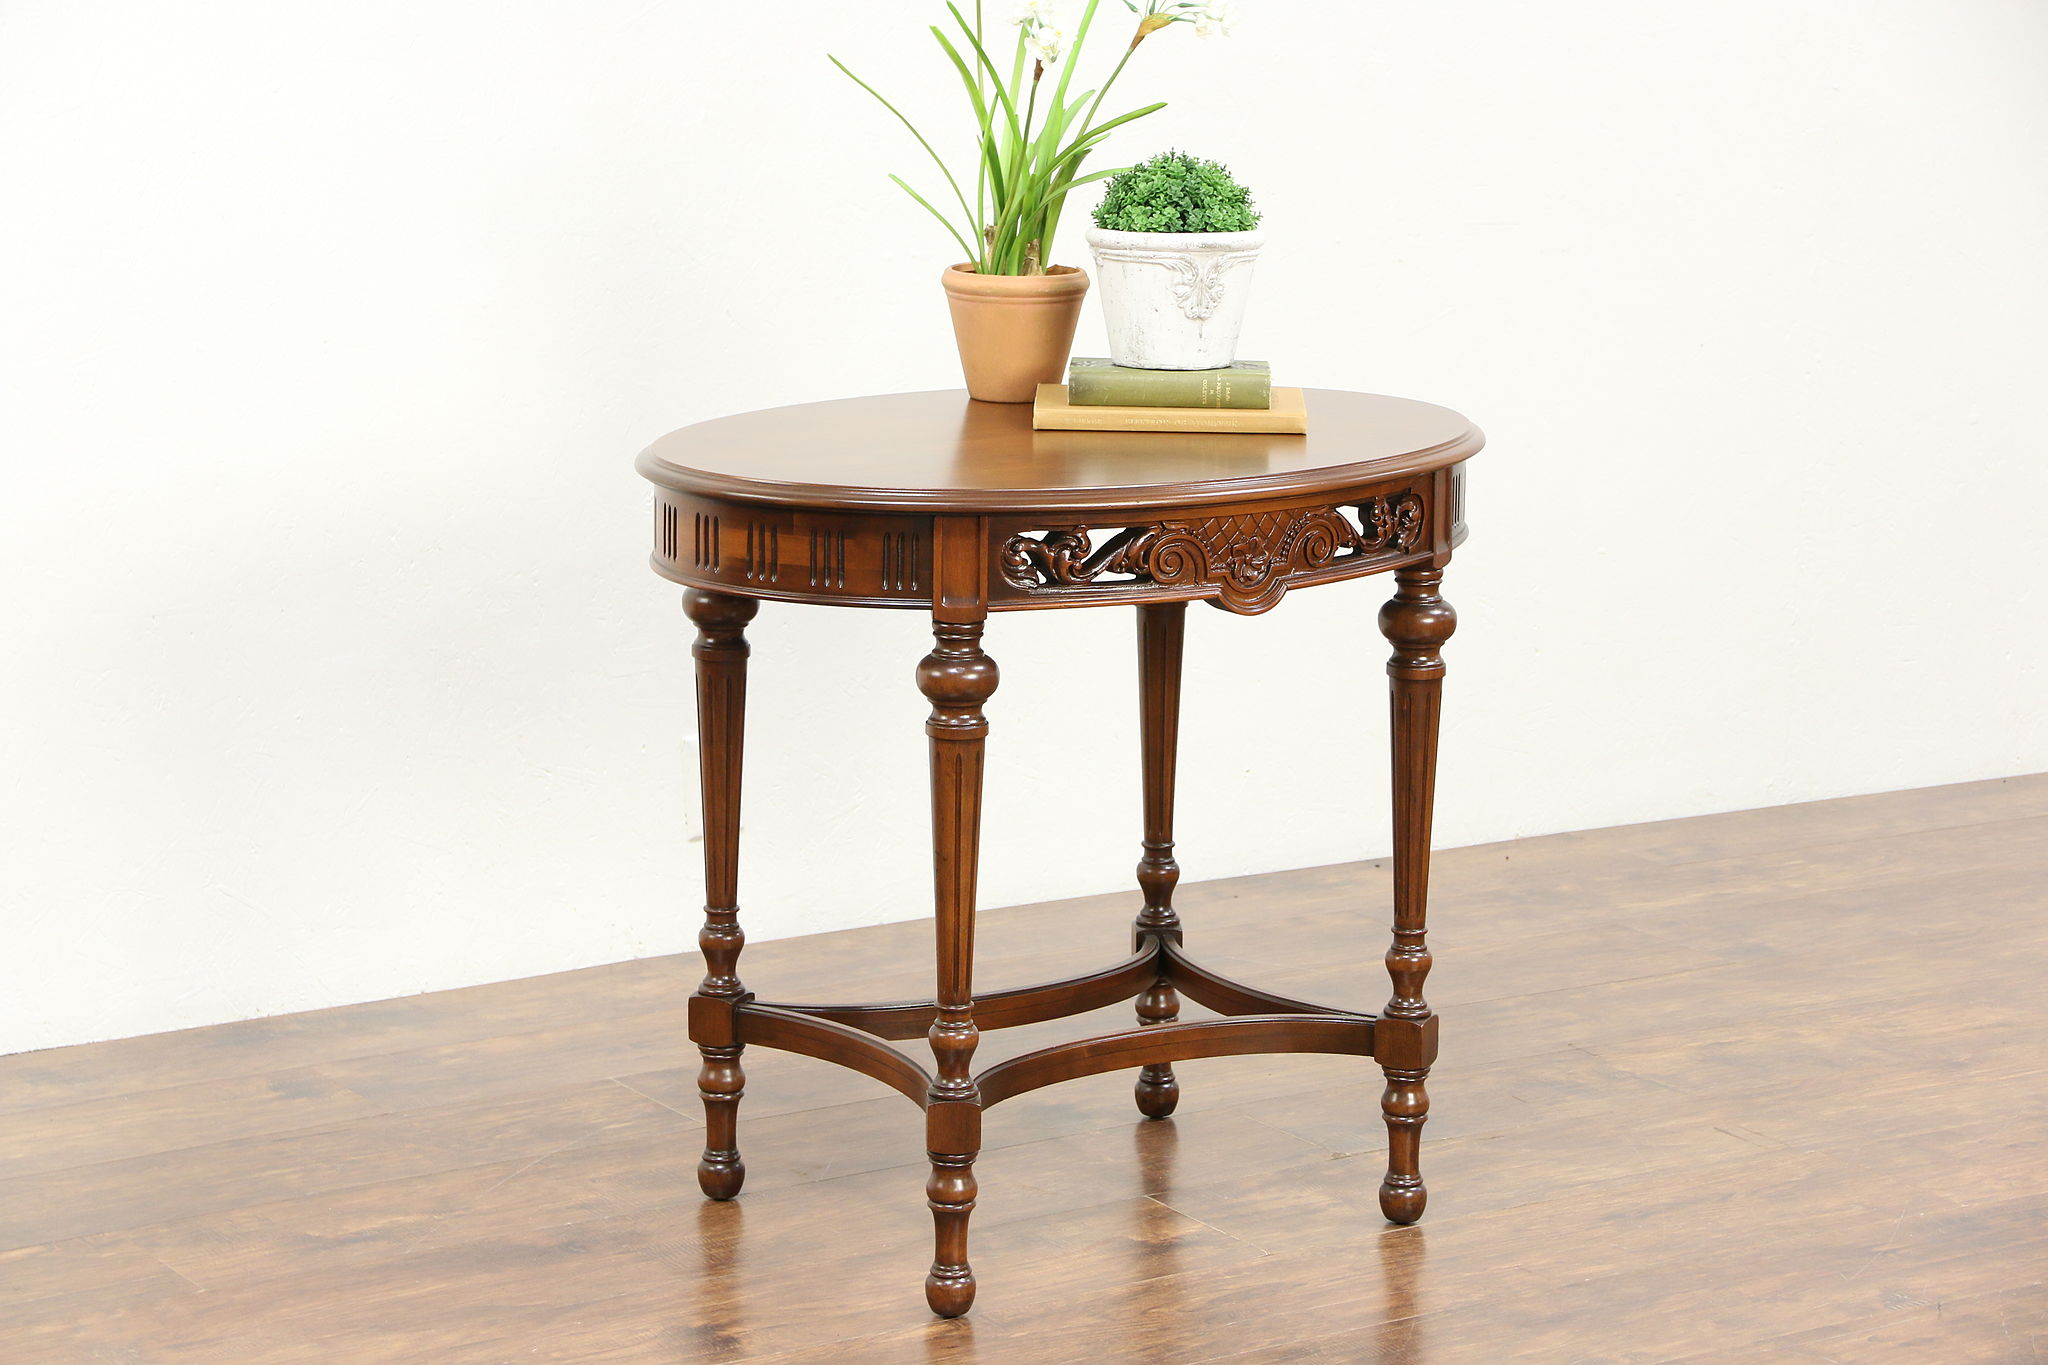 Merveilleux Oval Carved Walnut 1920 Antique Lamp Table, Signed Imperial Grand Rapids  Photo